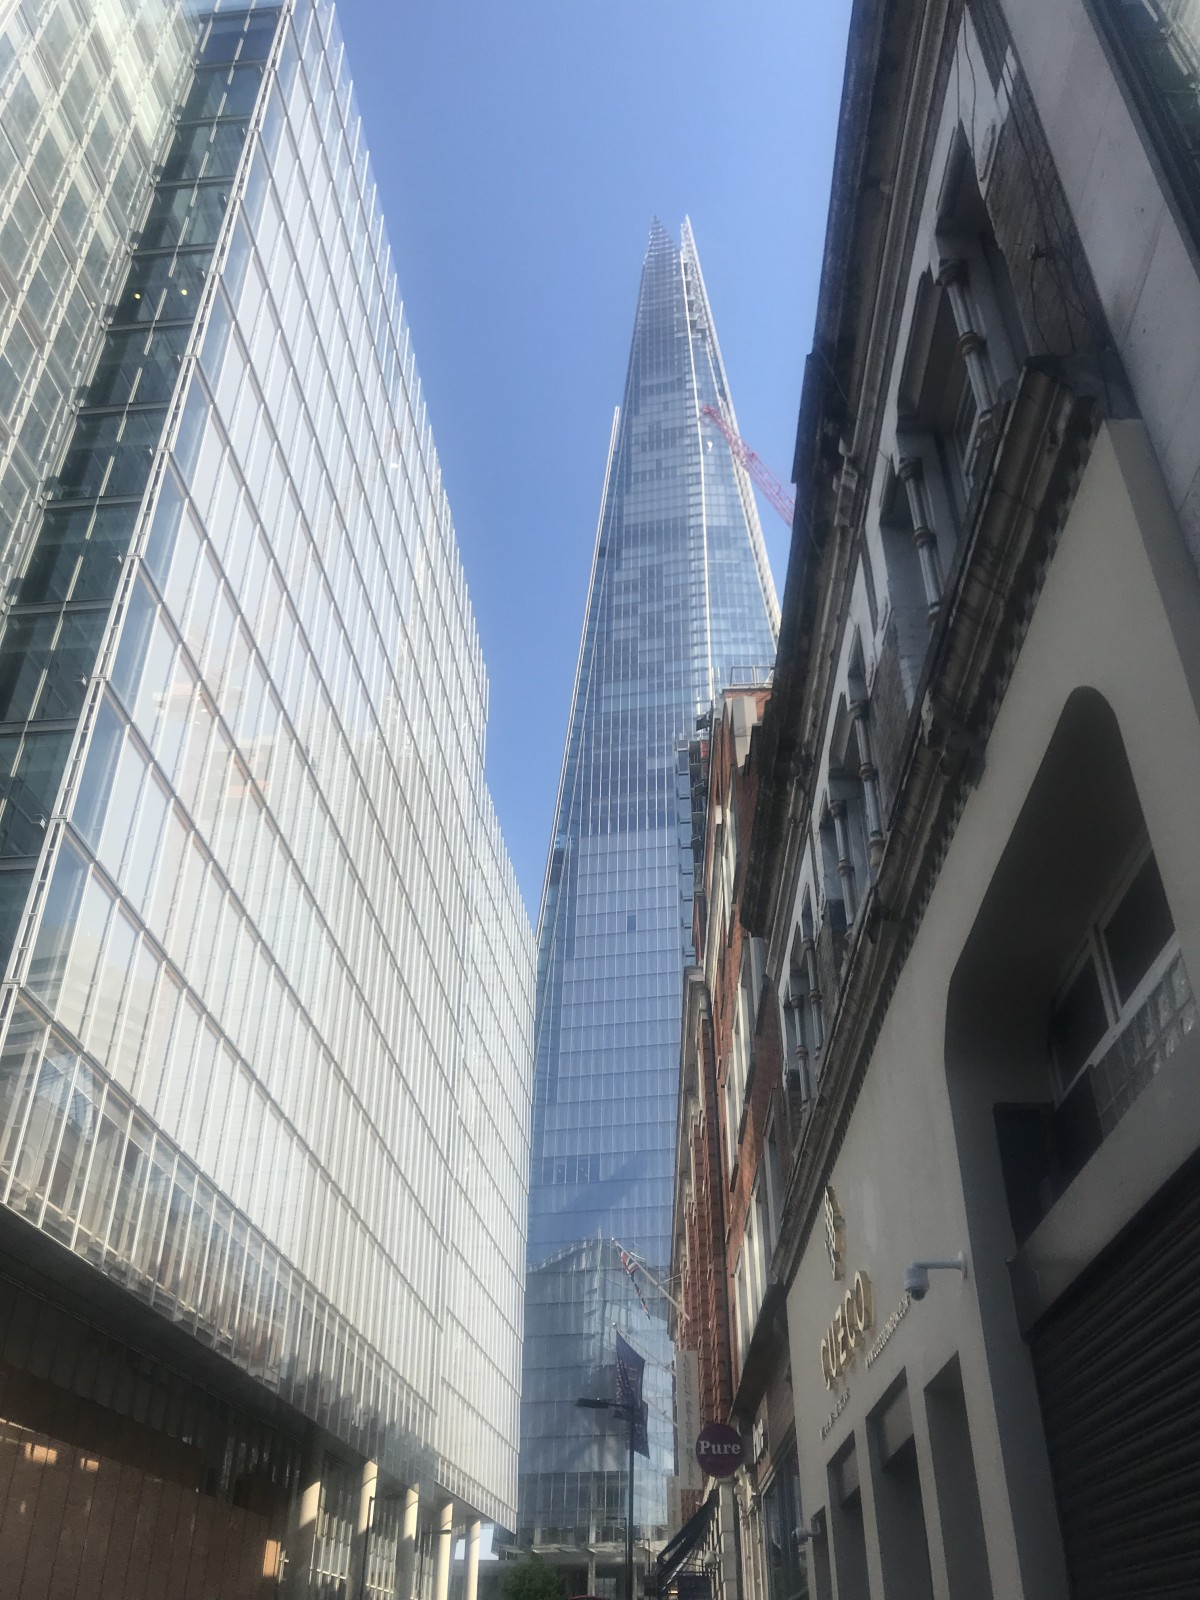 Great views of the Shard as you walk to Vinegar Yard